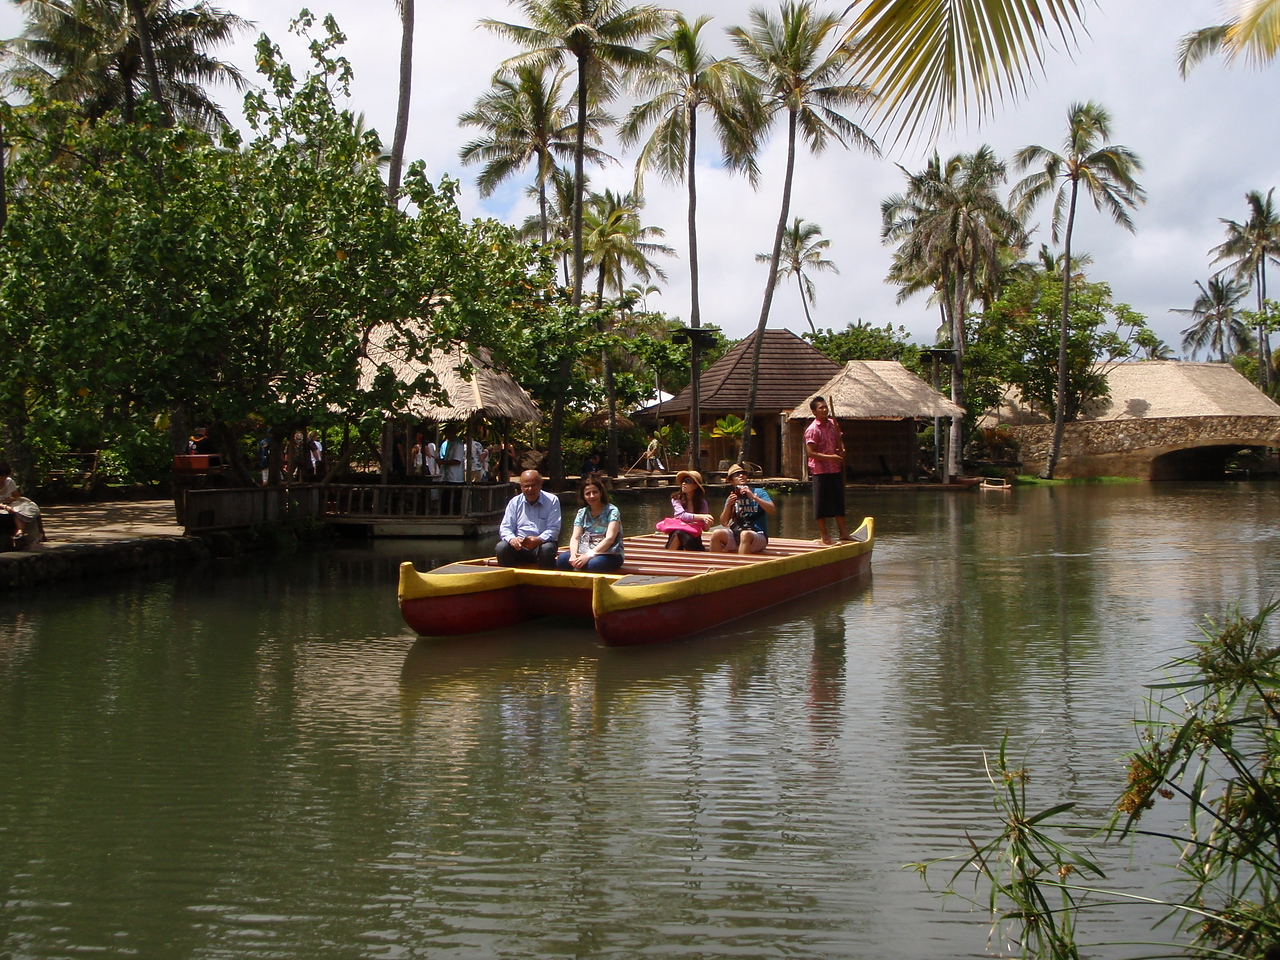 Visitors enjoying a canoe ride